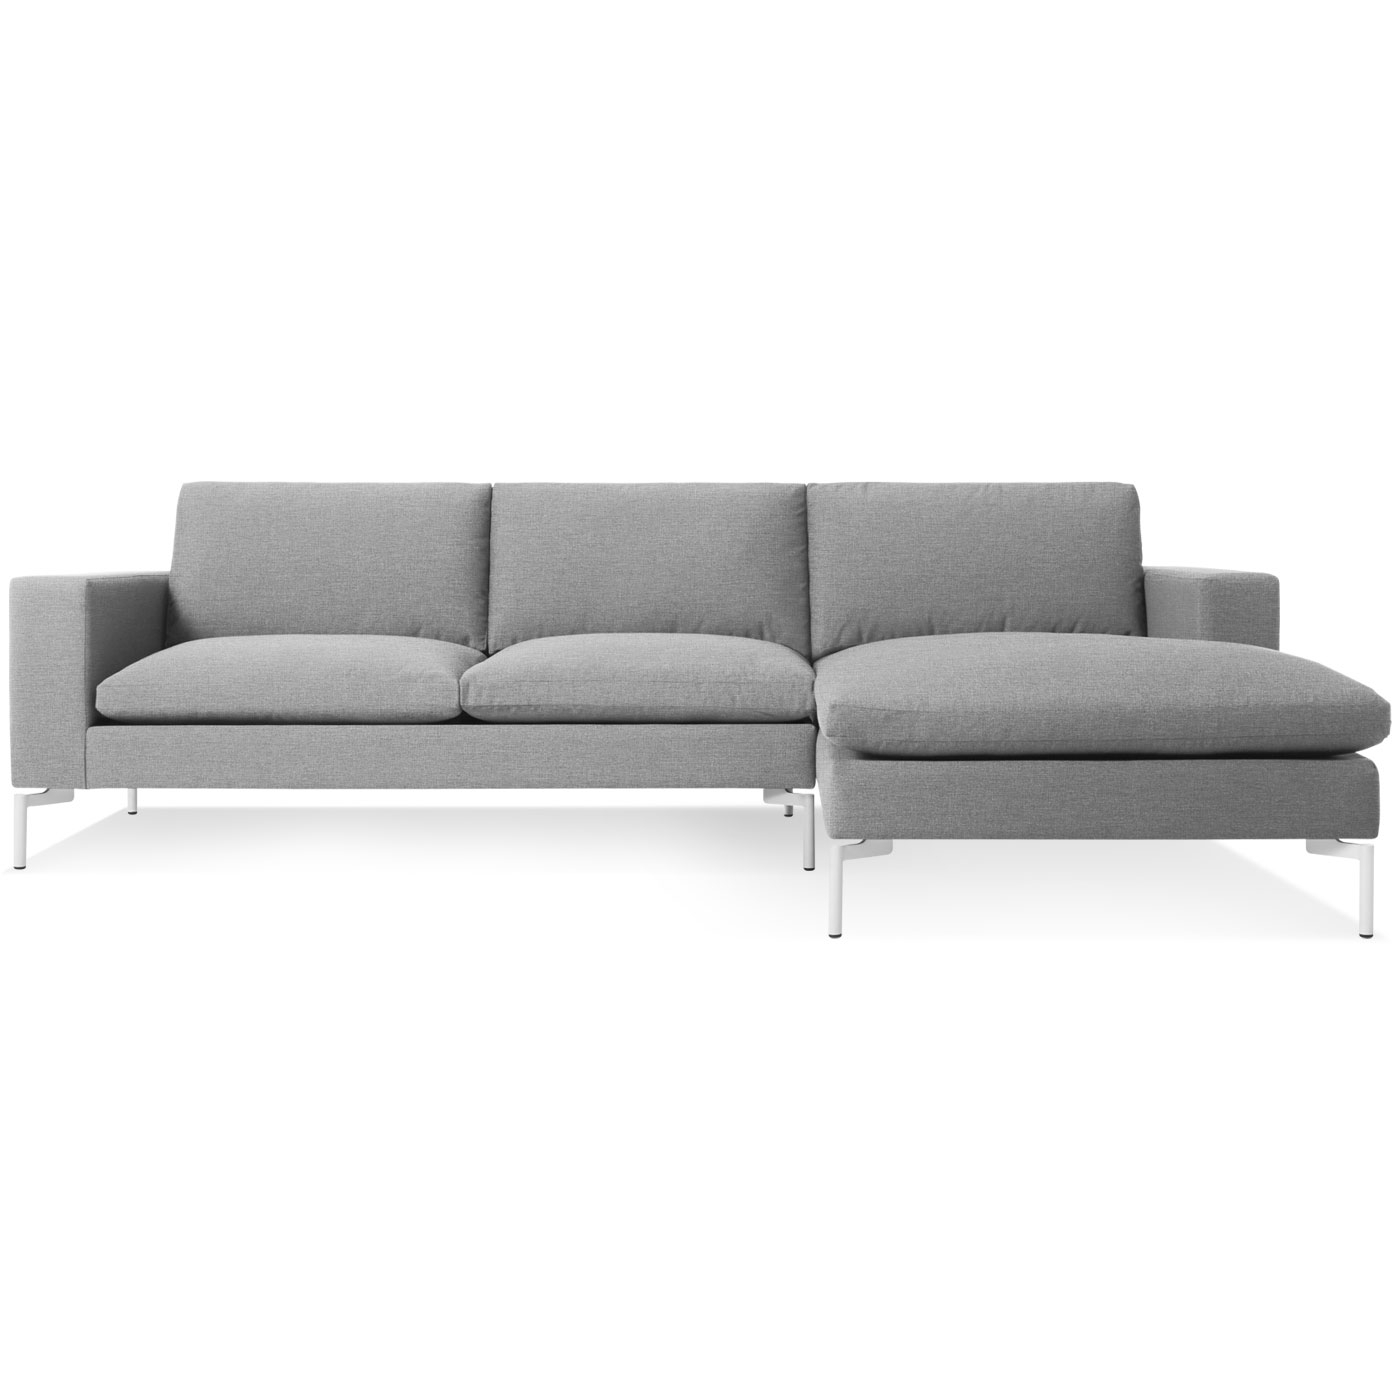 Famous New Standard Modern Chaise Sofa – Left Chaise (View 3 of 15)